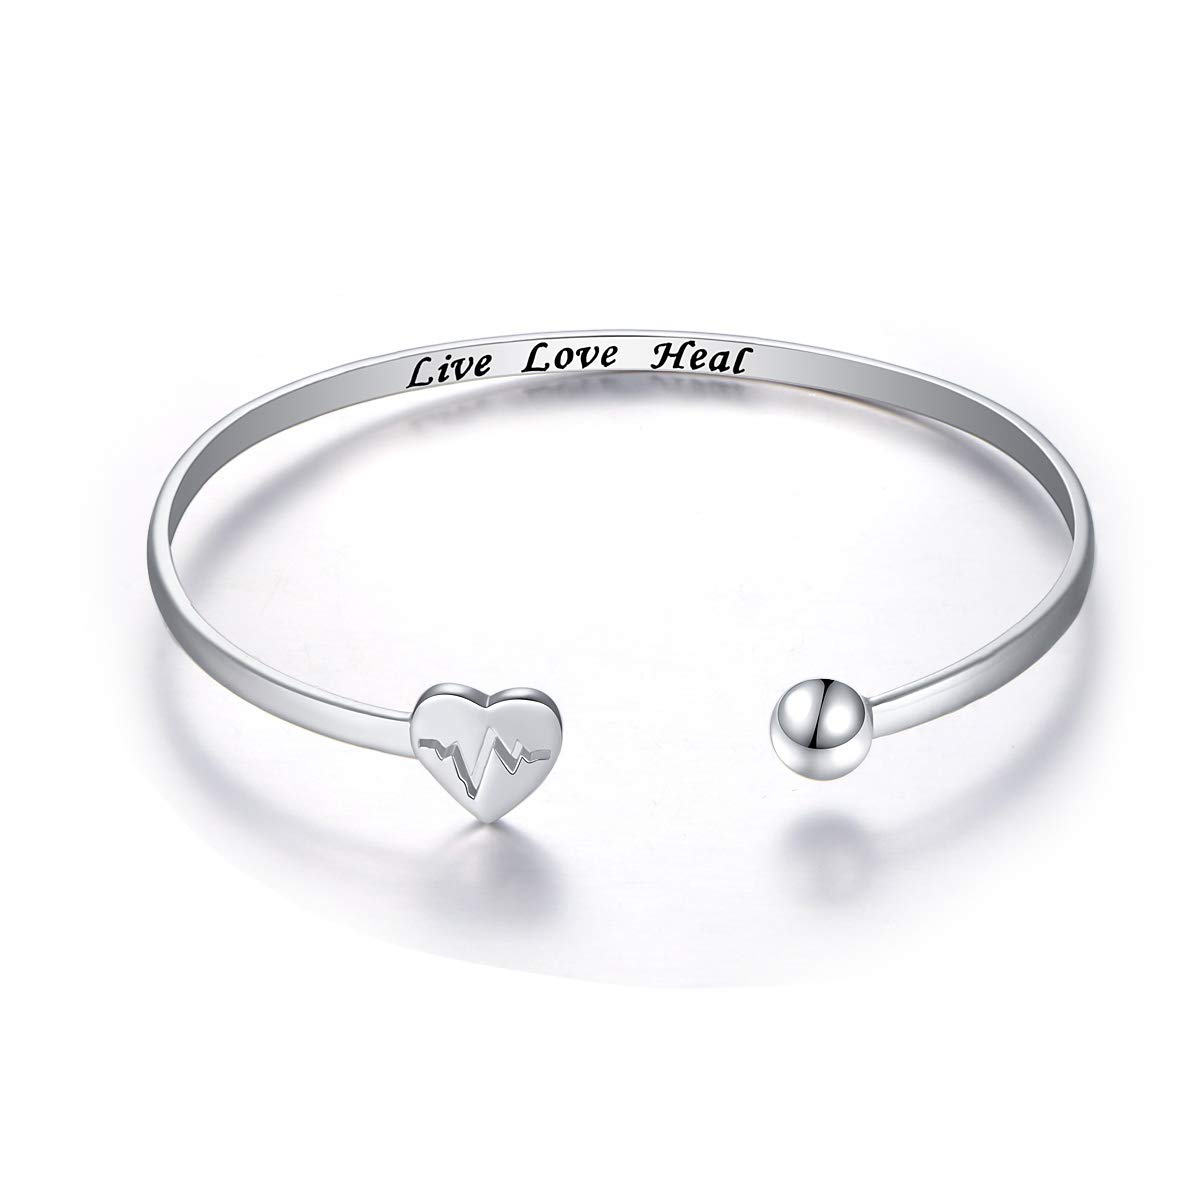 S925 Sterling Silver Live Love Heal EKG Heartbeat Adjustable Open Cuff Heart Bangle Bracelet for Nurse Doctor Medical Student Graduation Gift